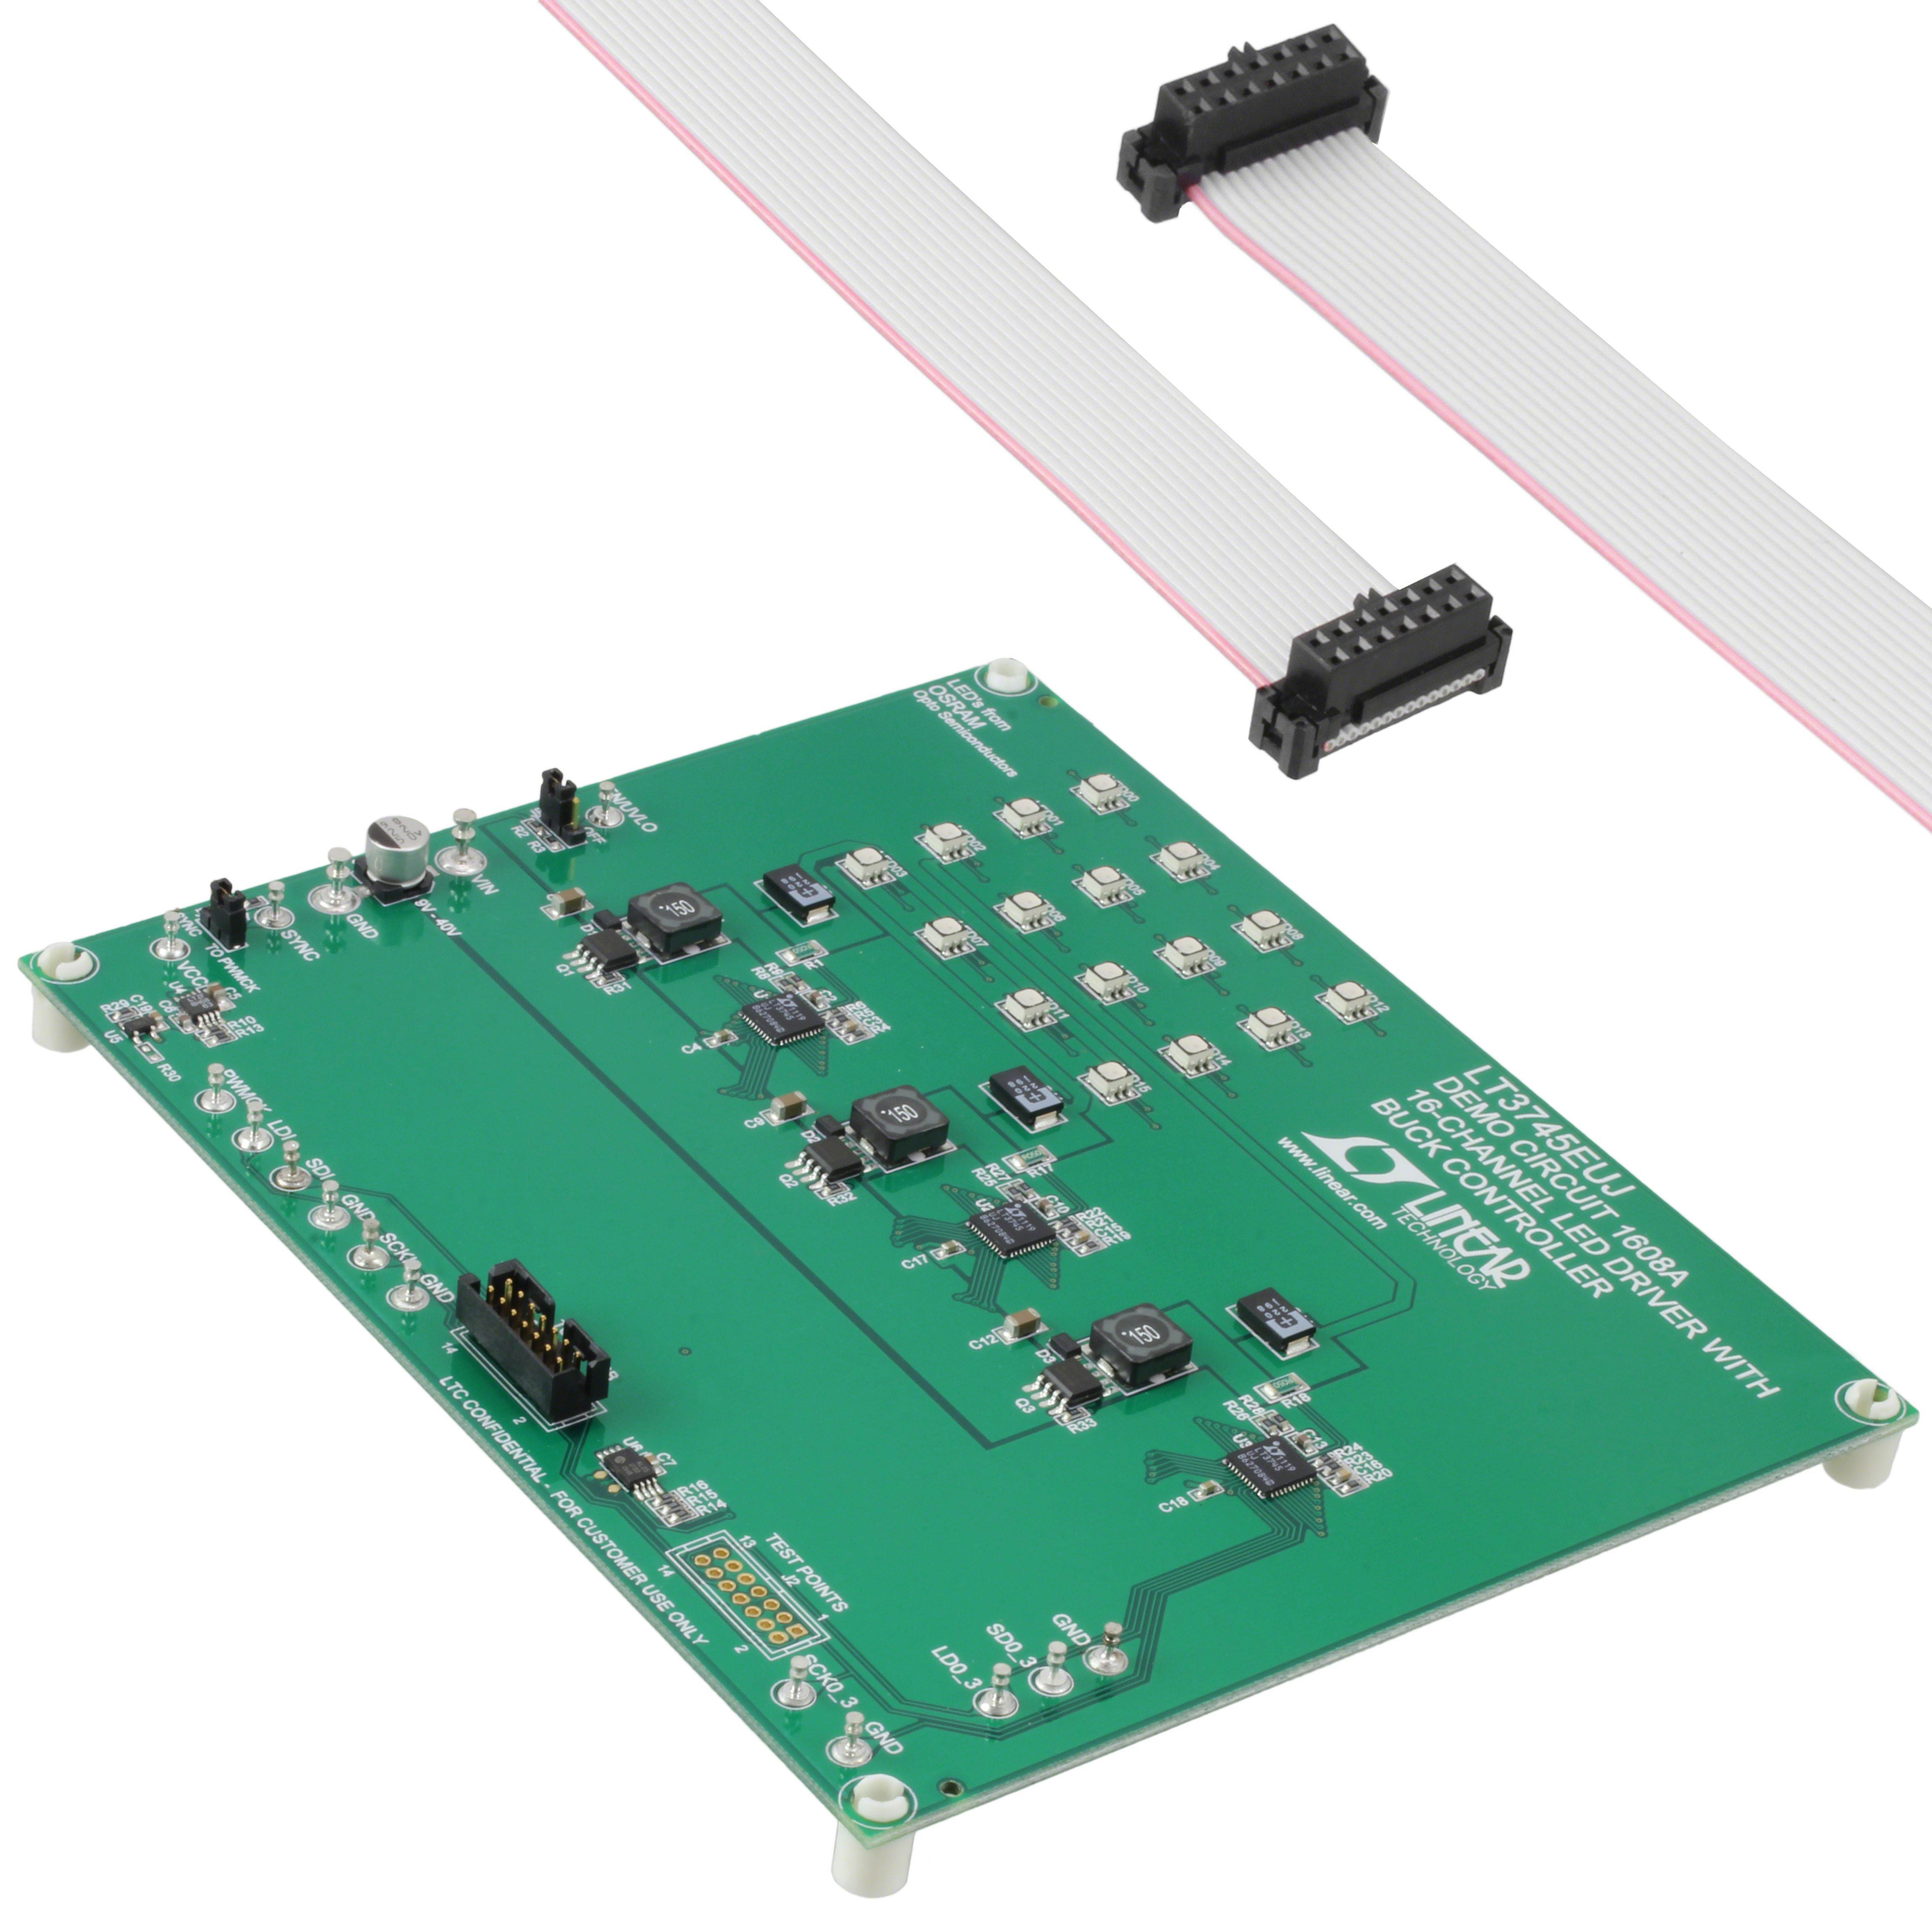 【DC1608A】BOARD EVAL FOR LT3745